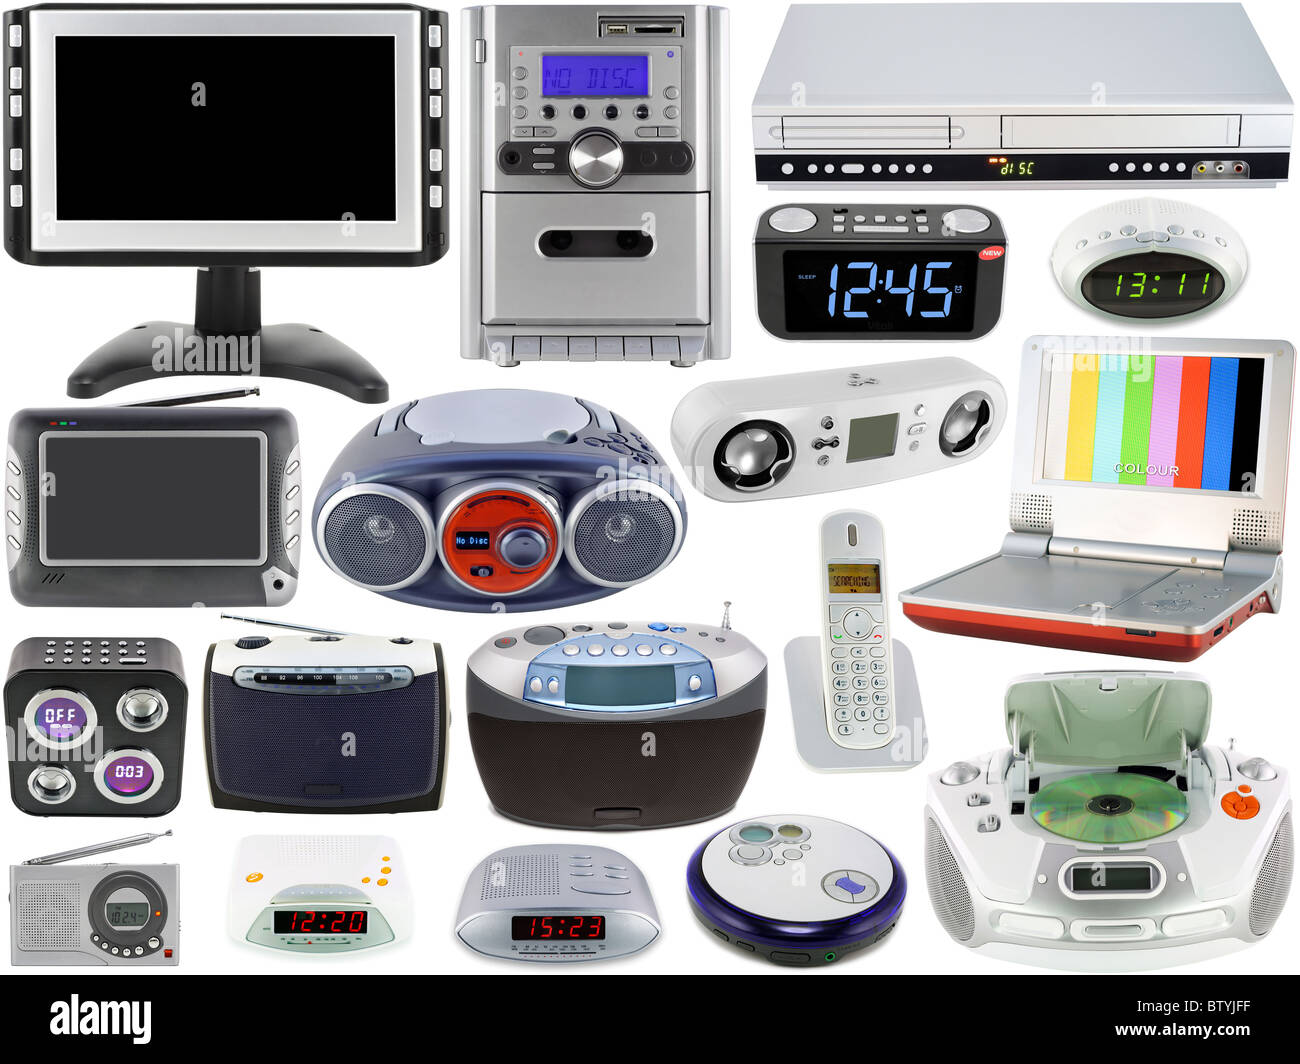 electronic devices at home images